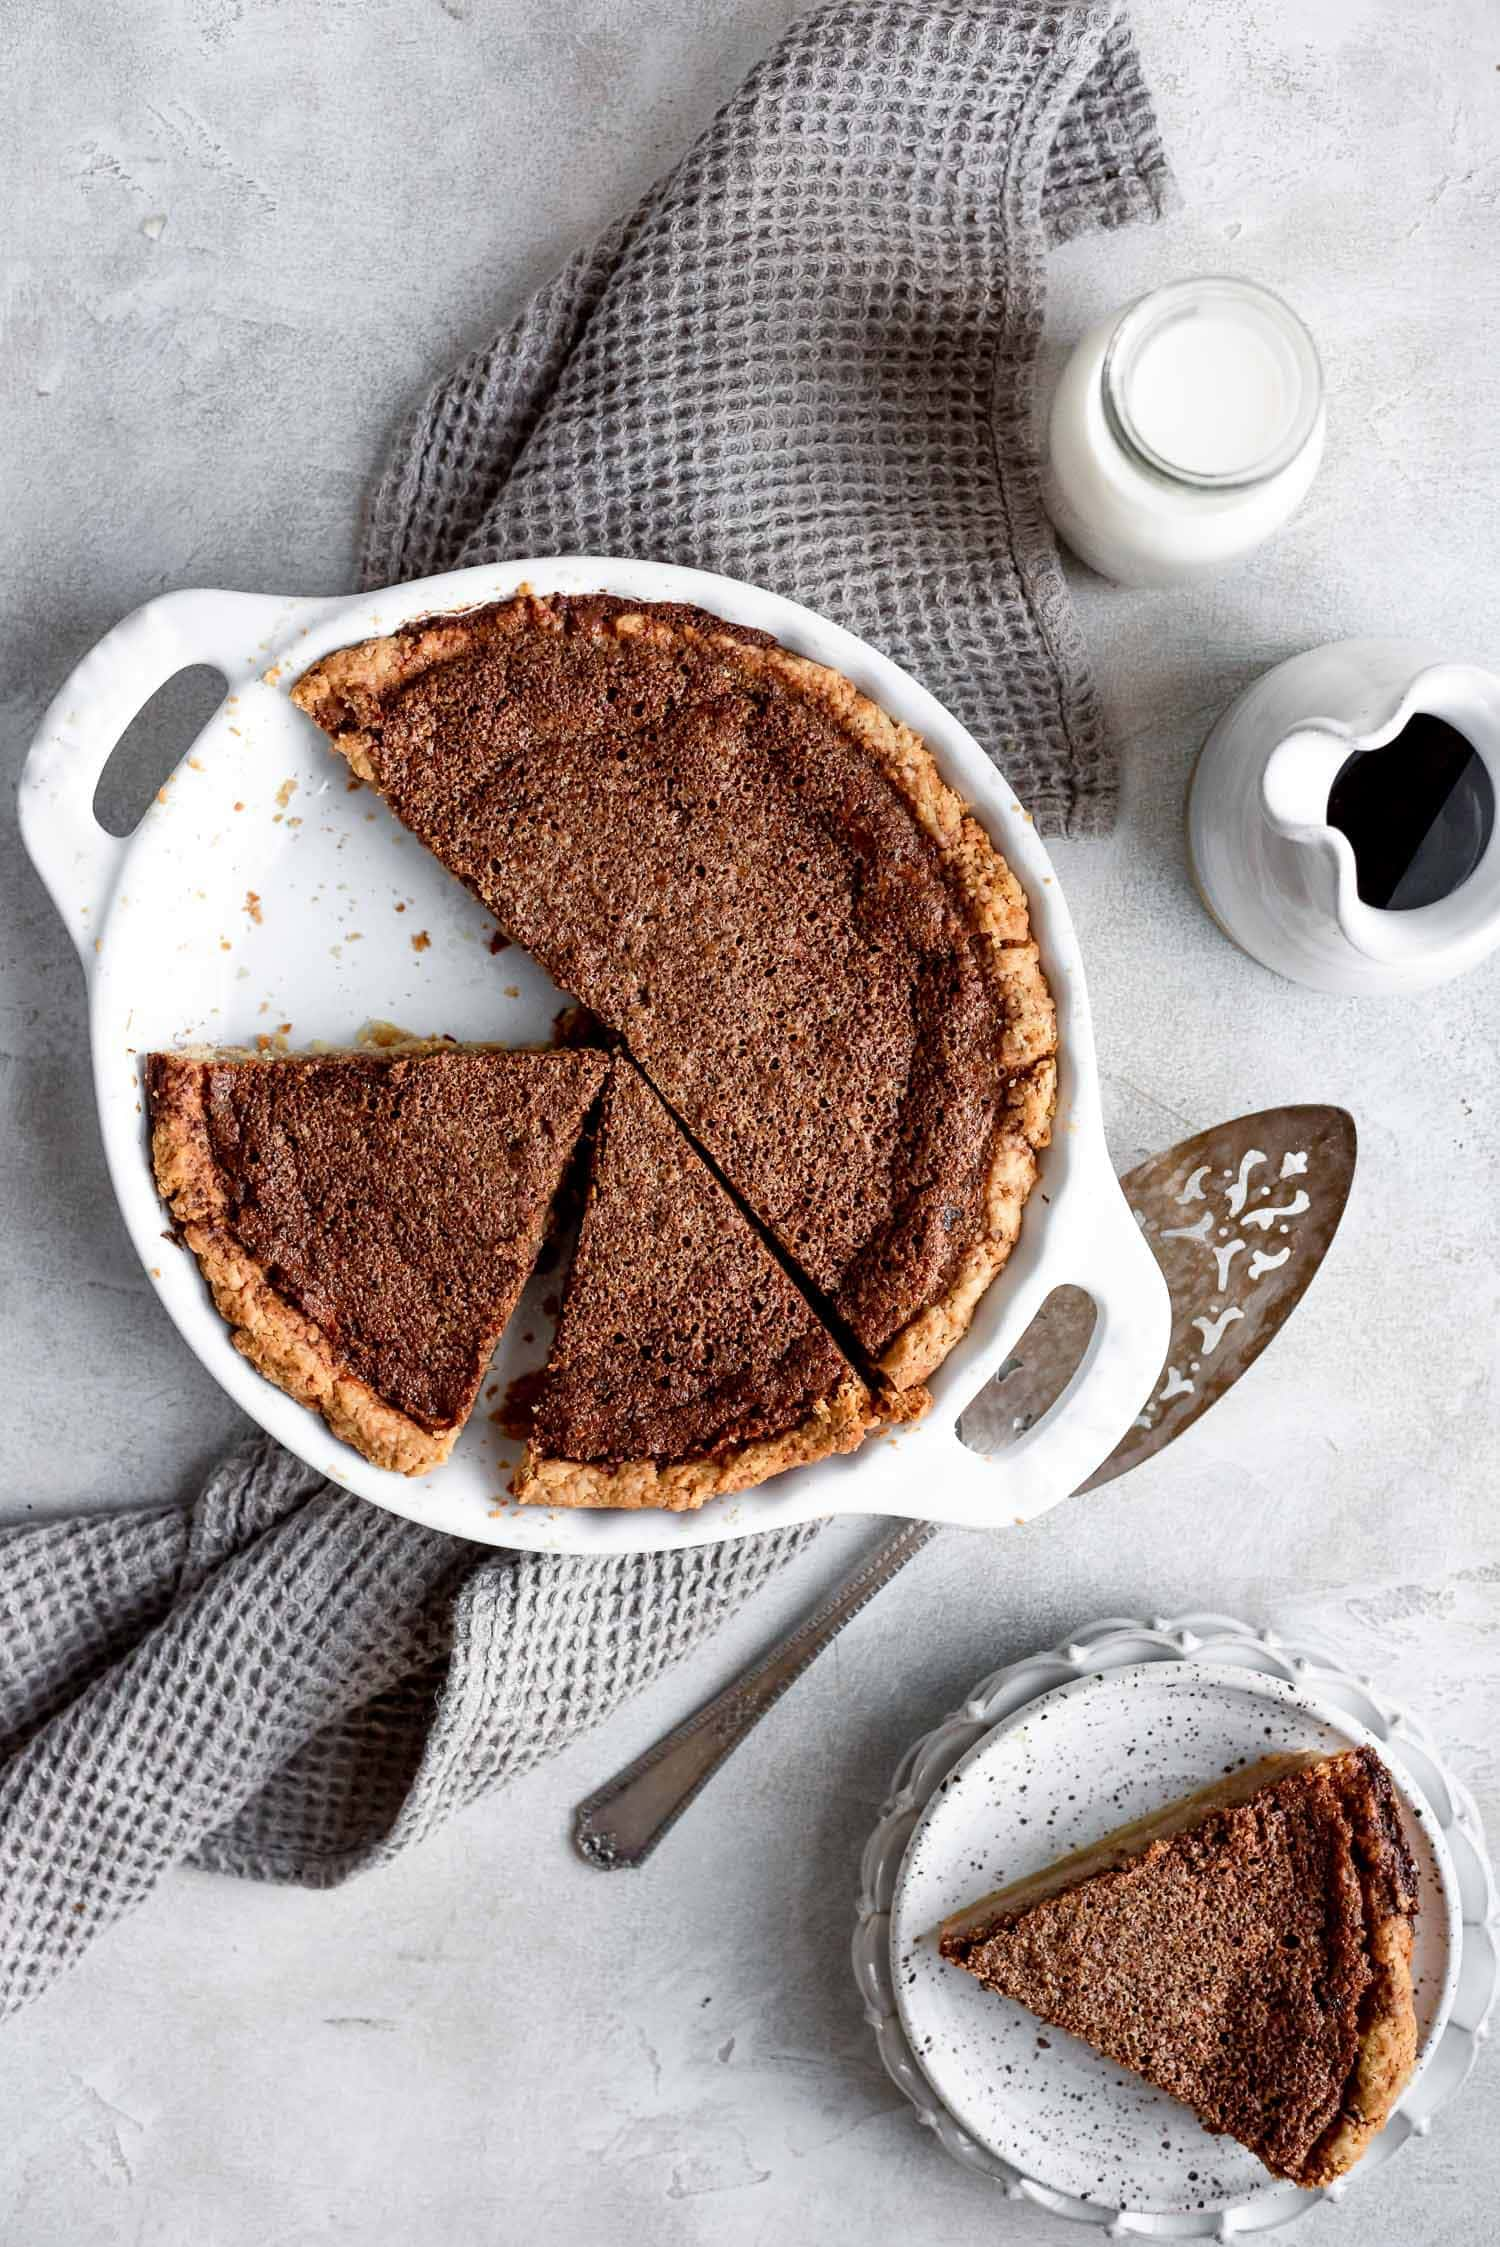 brown suugar chess pie fresh from oven with slices being cut